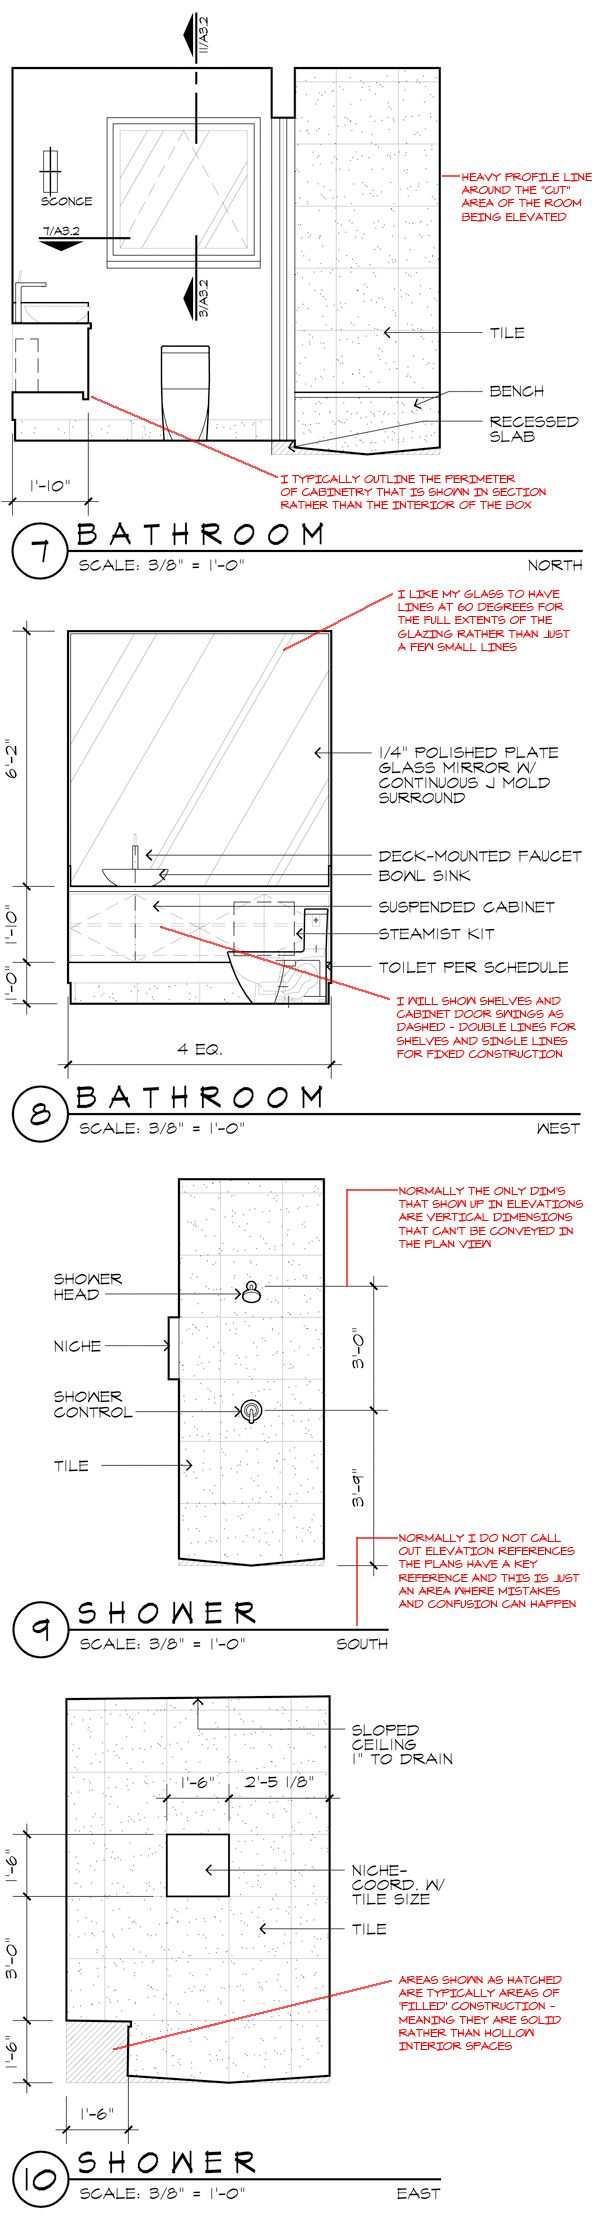 graphic standards part 2 architecture drawing sketchs pinterest architektur grundriss. Black Bedroom Furniture Sets. Home Design Ideas